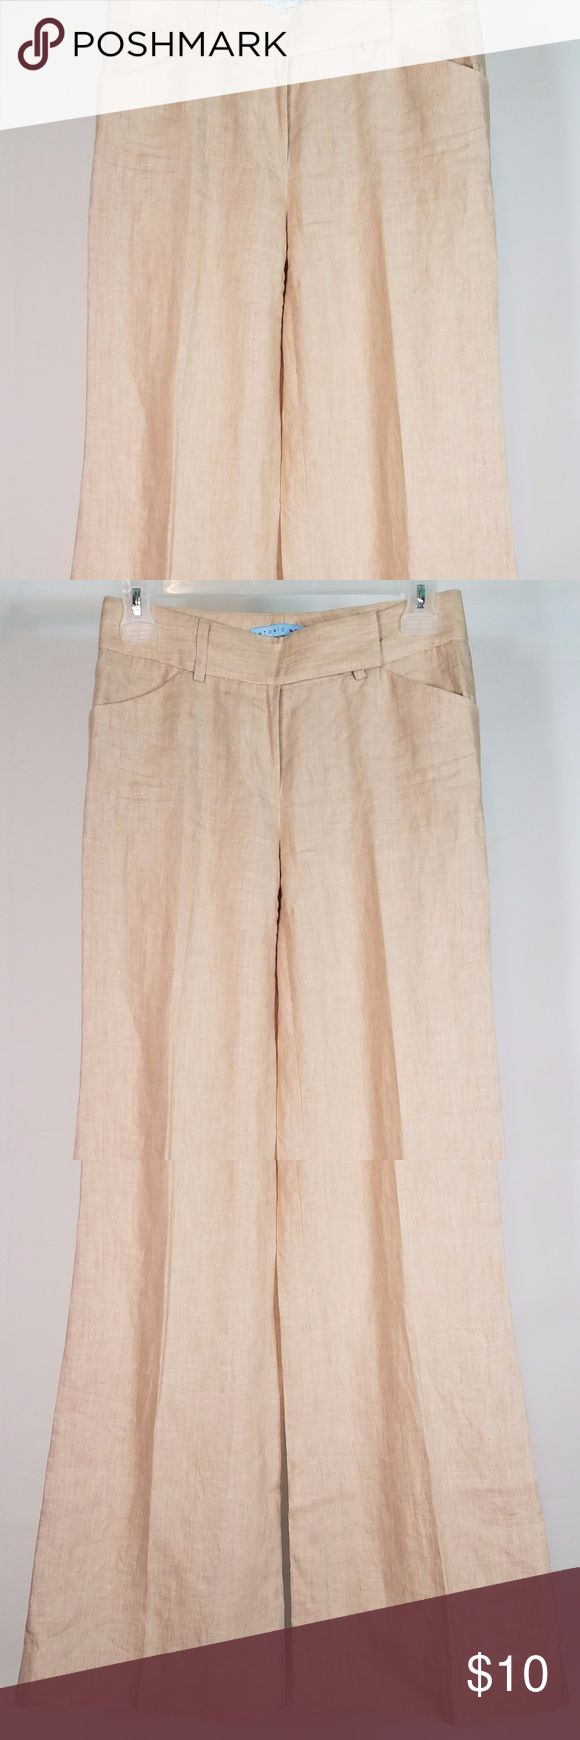 Antonio Melani tan Linen slacks/pants size 0 -Item: ladies slacks  -Brand: Antonio Melani  -Color: beige/tan  -Fabric Content: 100% Linen  -Condition: Excellent used condition with small flaw. See photos.   -Special Details/Notes: Missing one of two metal clasps at the waist. Still functional and wearable with only one clasp, but it could easily be fixed by a tailor or seamstress if need be. Other than that, they're in excellent condition with plenty of life left in them!  -Measurements…